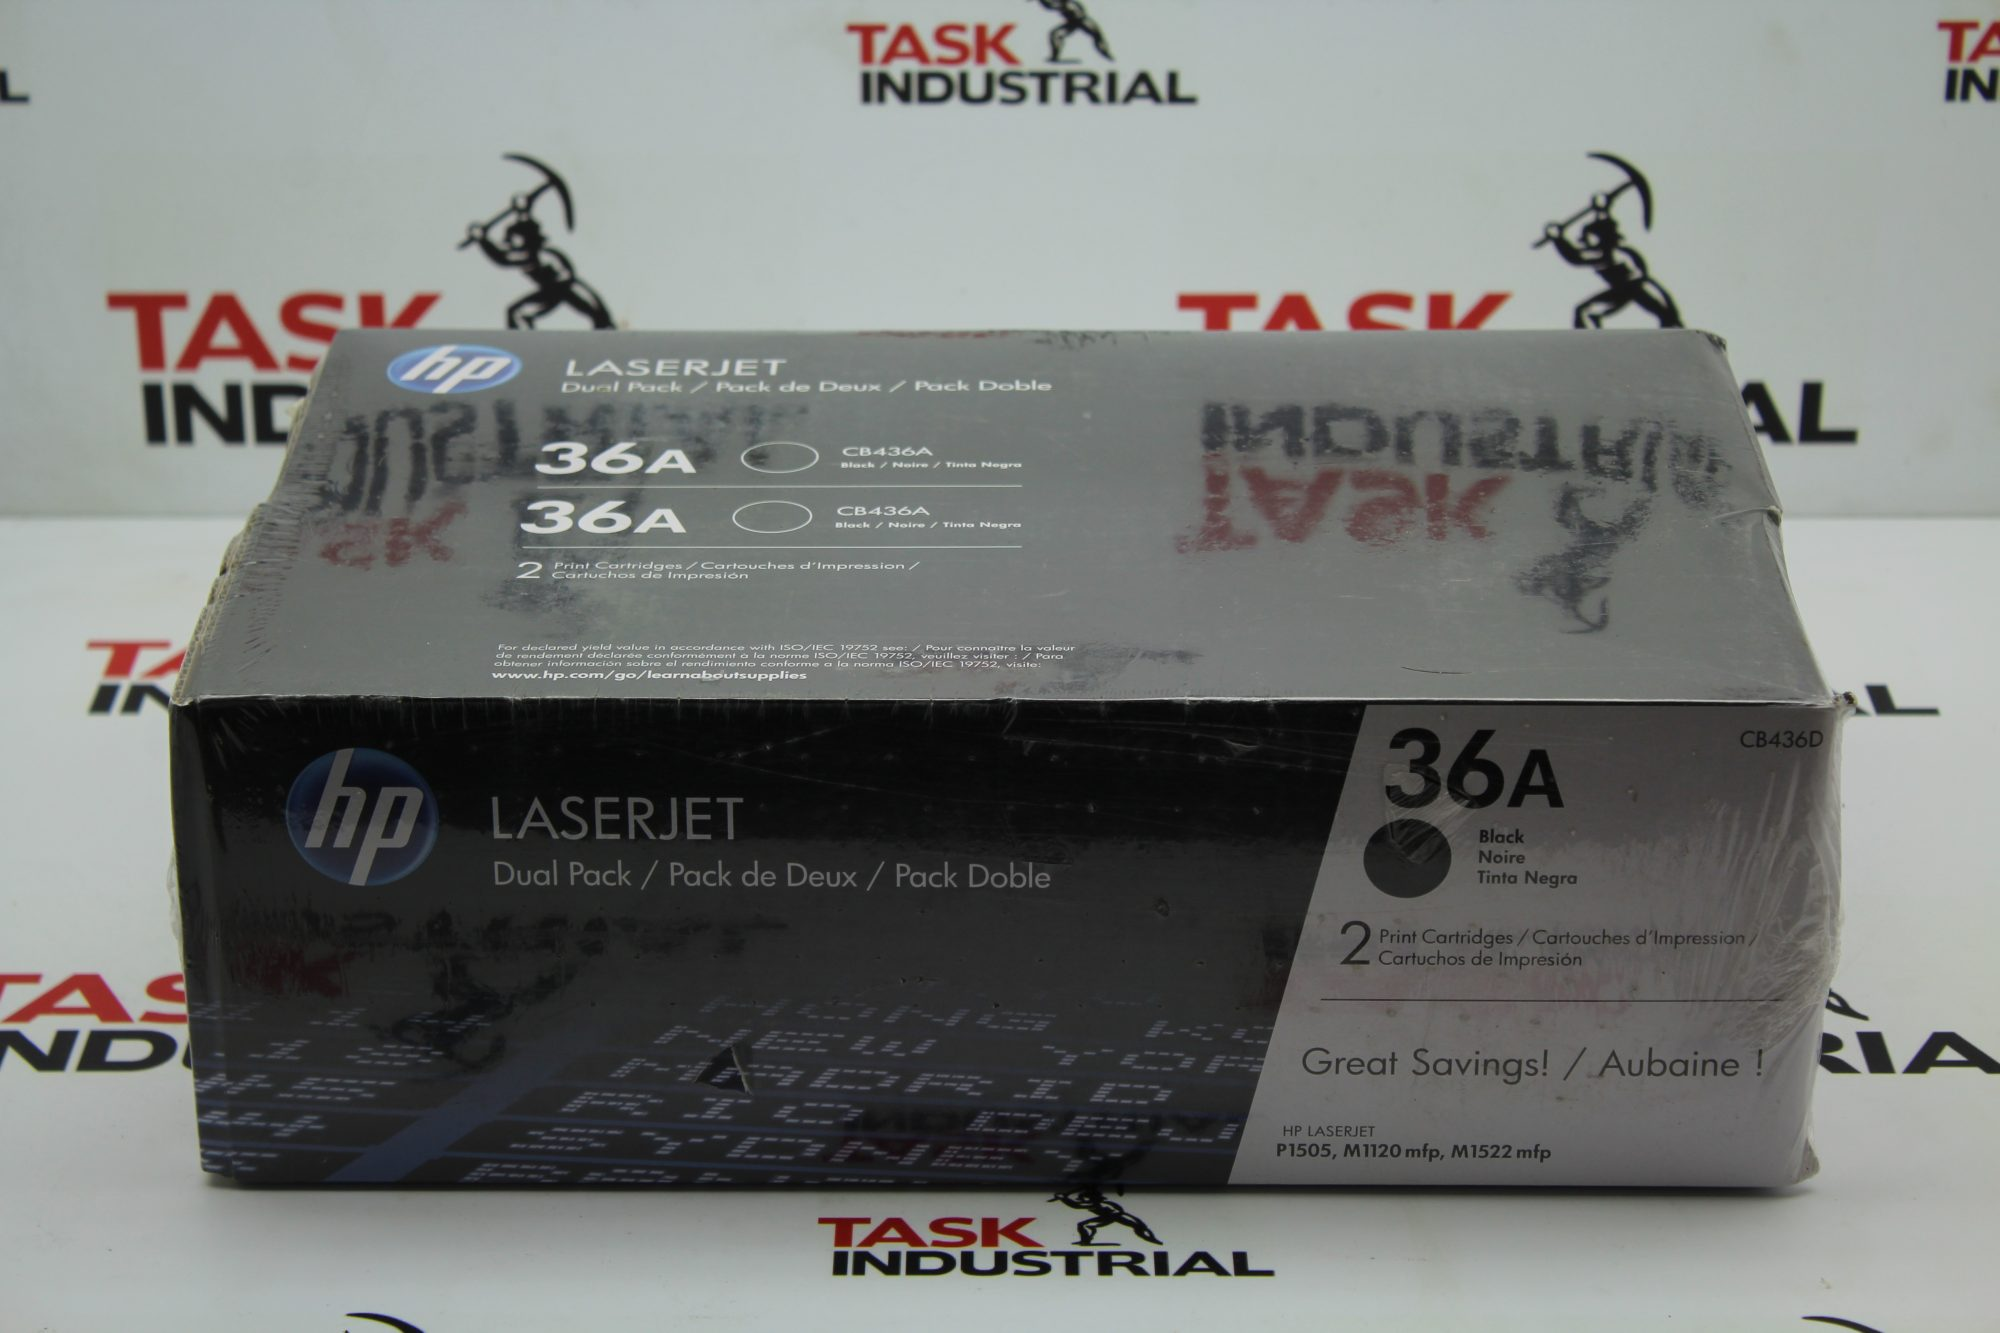 HP Laserjet 36a Dual Pack Black Ink